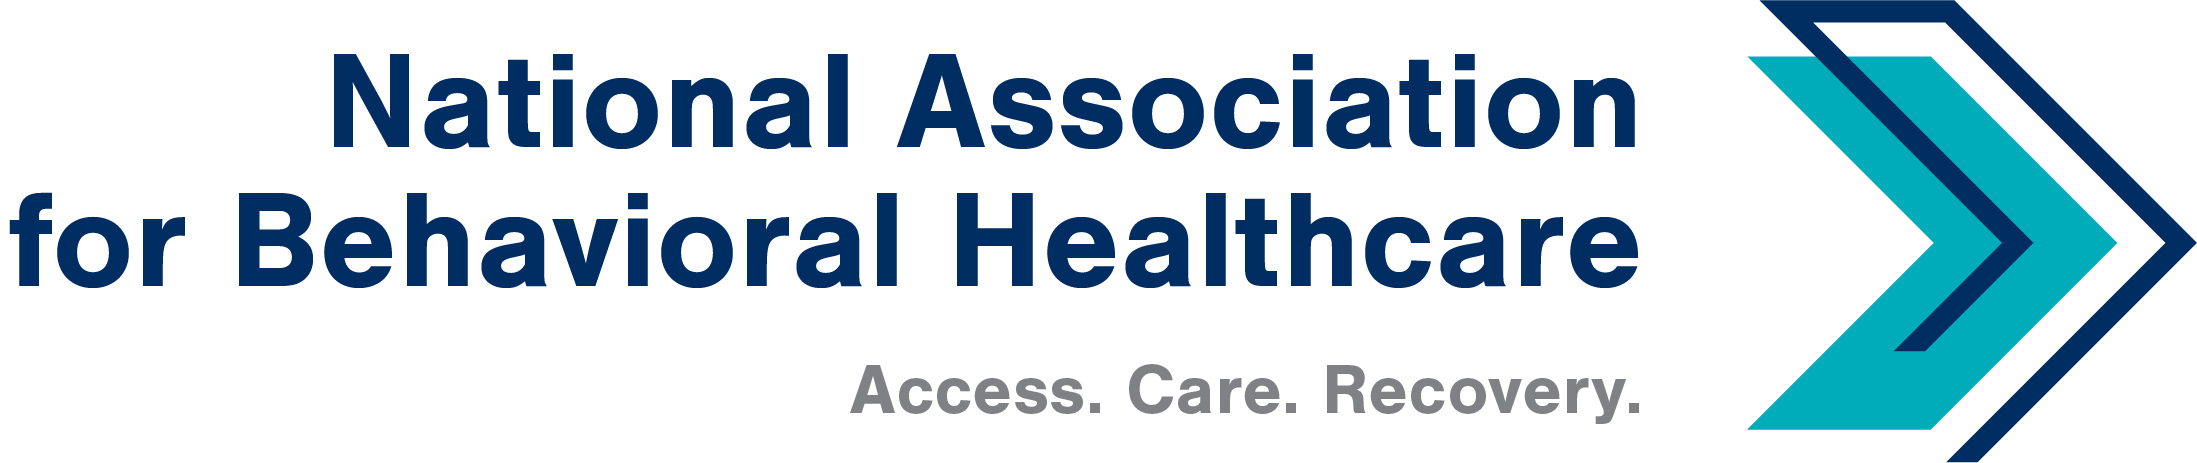 National Association for Behavioral Healthcare